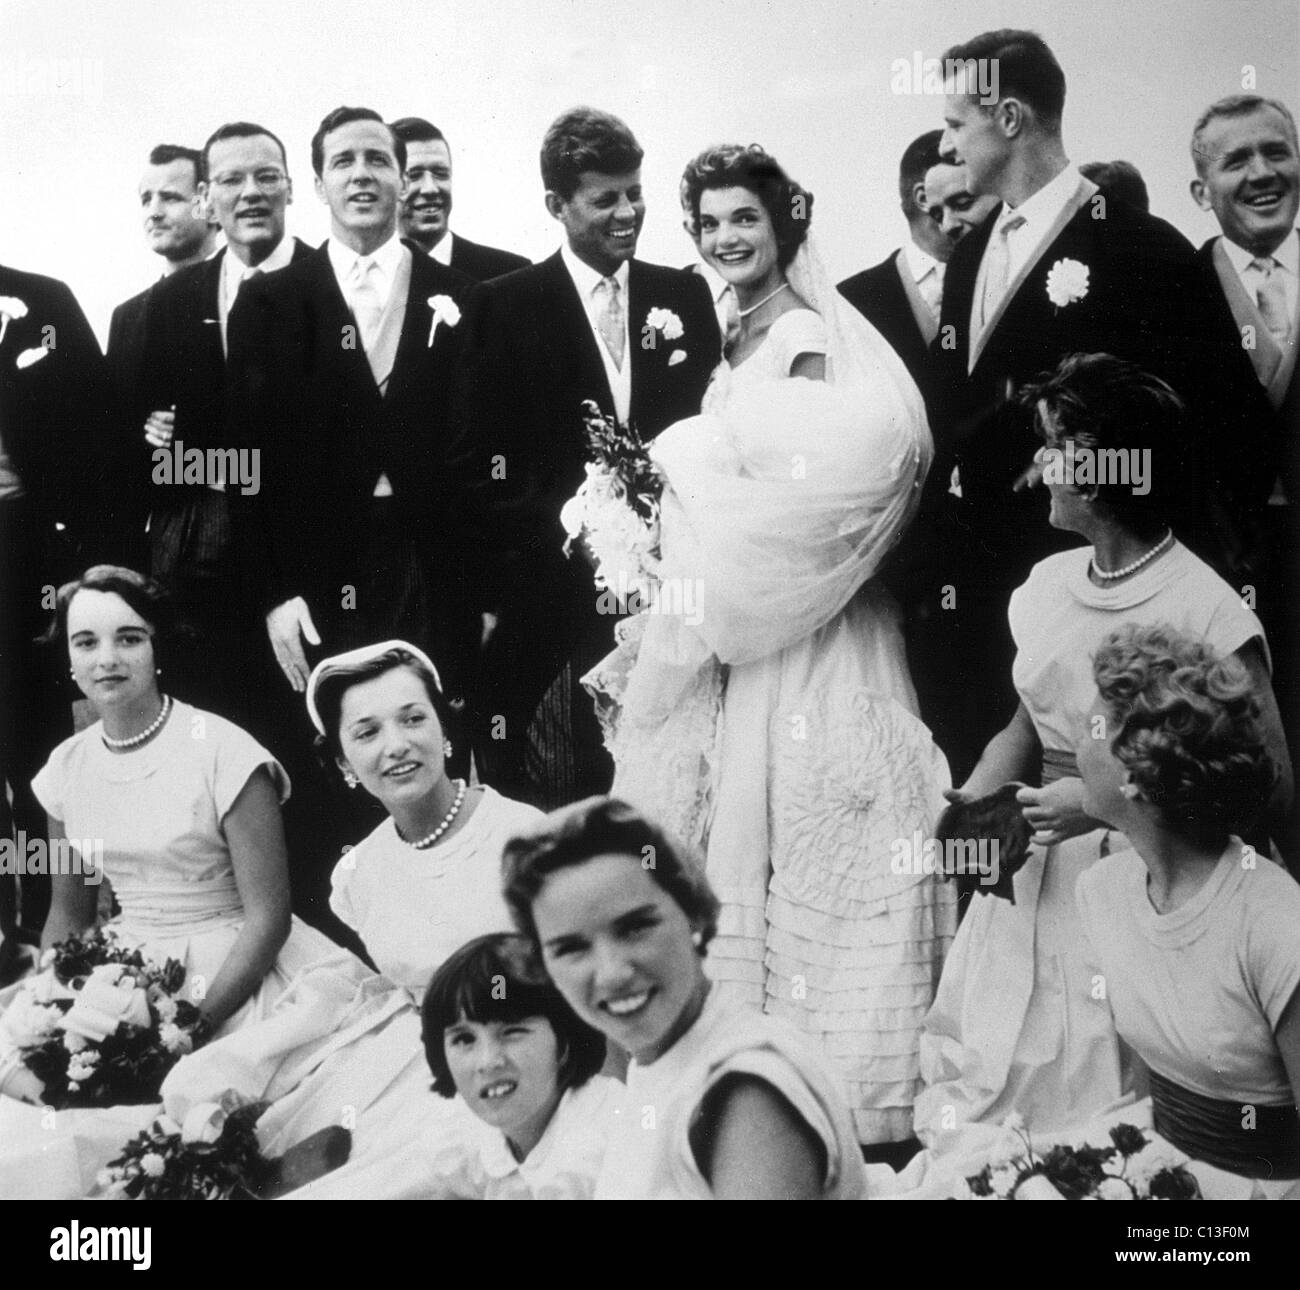 JOHN F. KENNEDY and JACQUELINE BOUVIER KENNEDY on their wedding day, Newport, R.I., 1953 Stock Photo